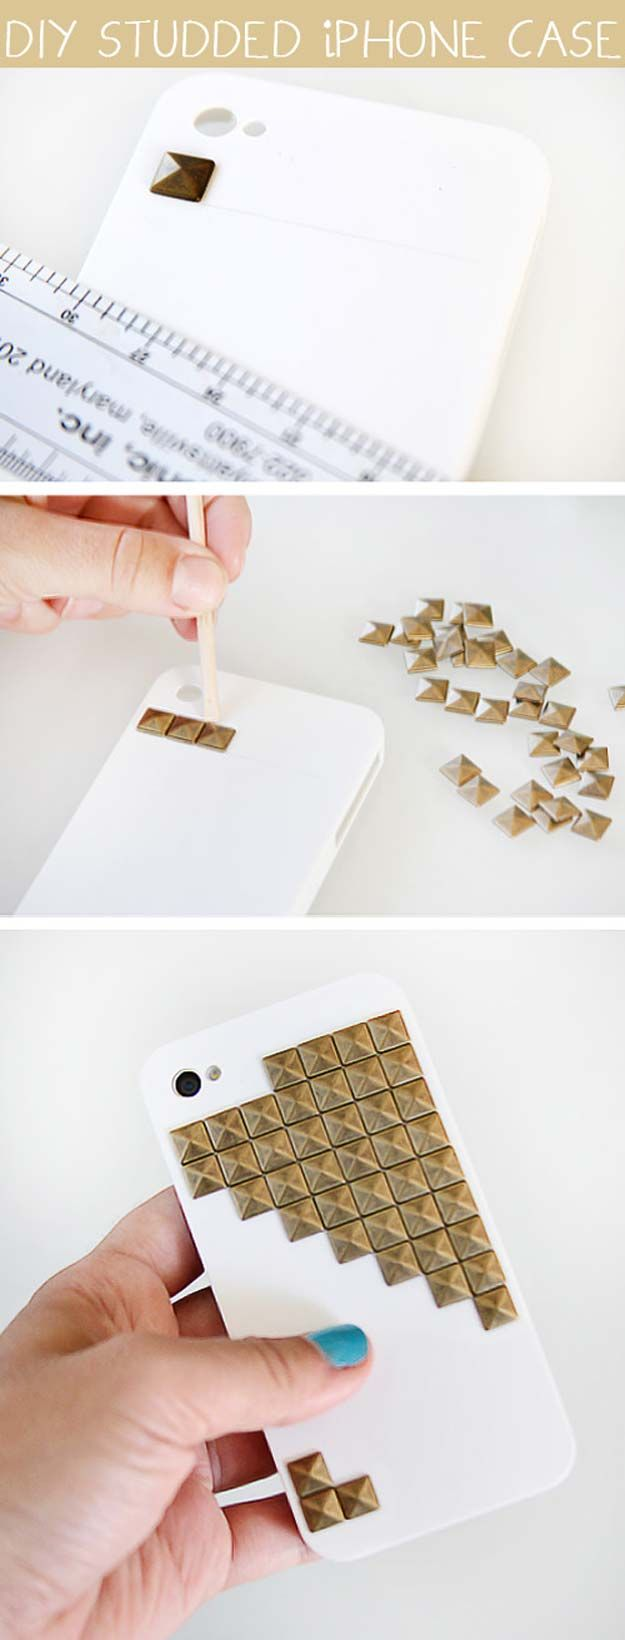 DIY iPhone Case Makeovers - Studded iPhone Case - Easy DIY Projects and Handmade Crafts Tutorial Ideas You Can Make To Decorate Your Phone With Glitter, Nail Polish, Sharpie, Paint, Bling, Printables and Sewing Patterns - Fun DIY Ideas for Women, Teens, Tweens and Kids